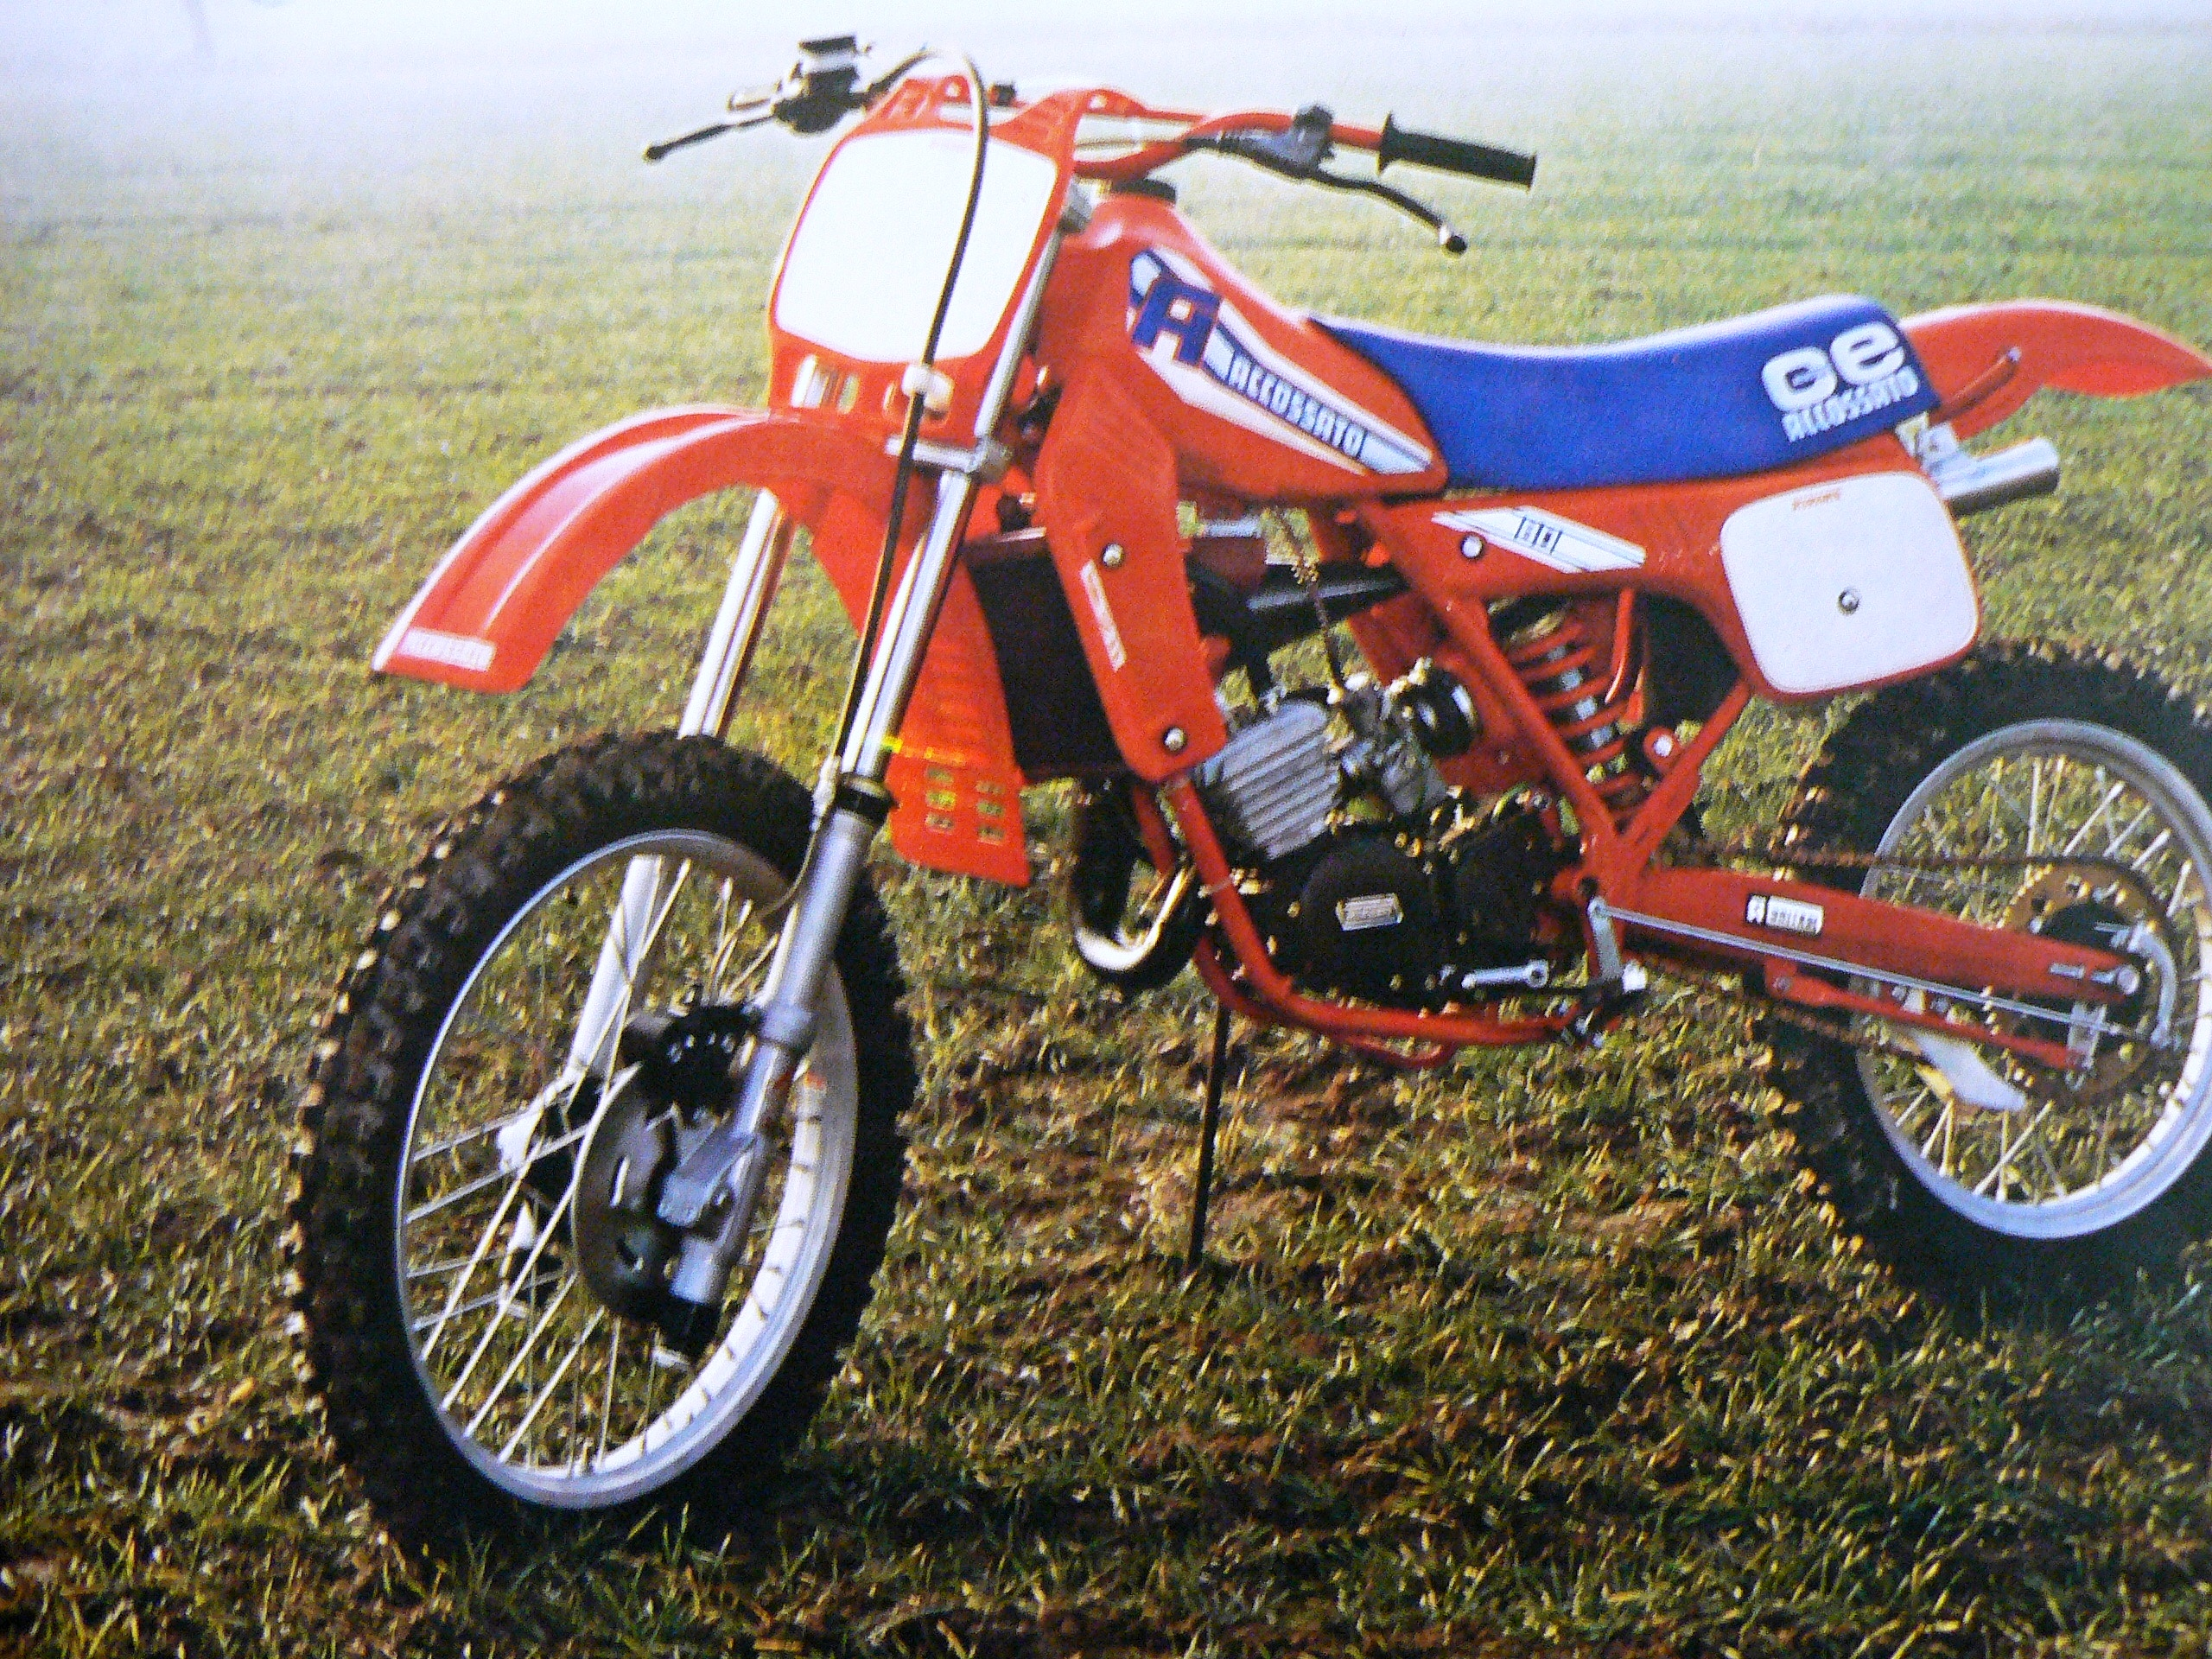 Garelli XR 125 Tiger images #153981